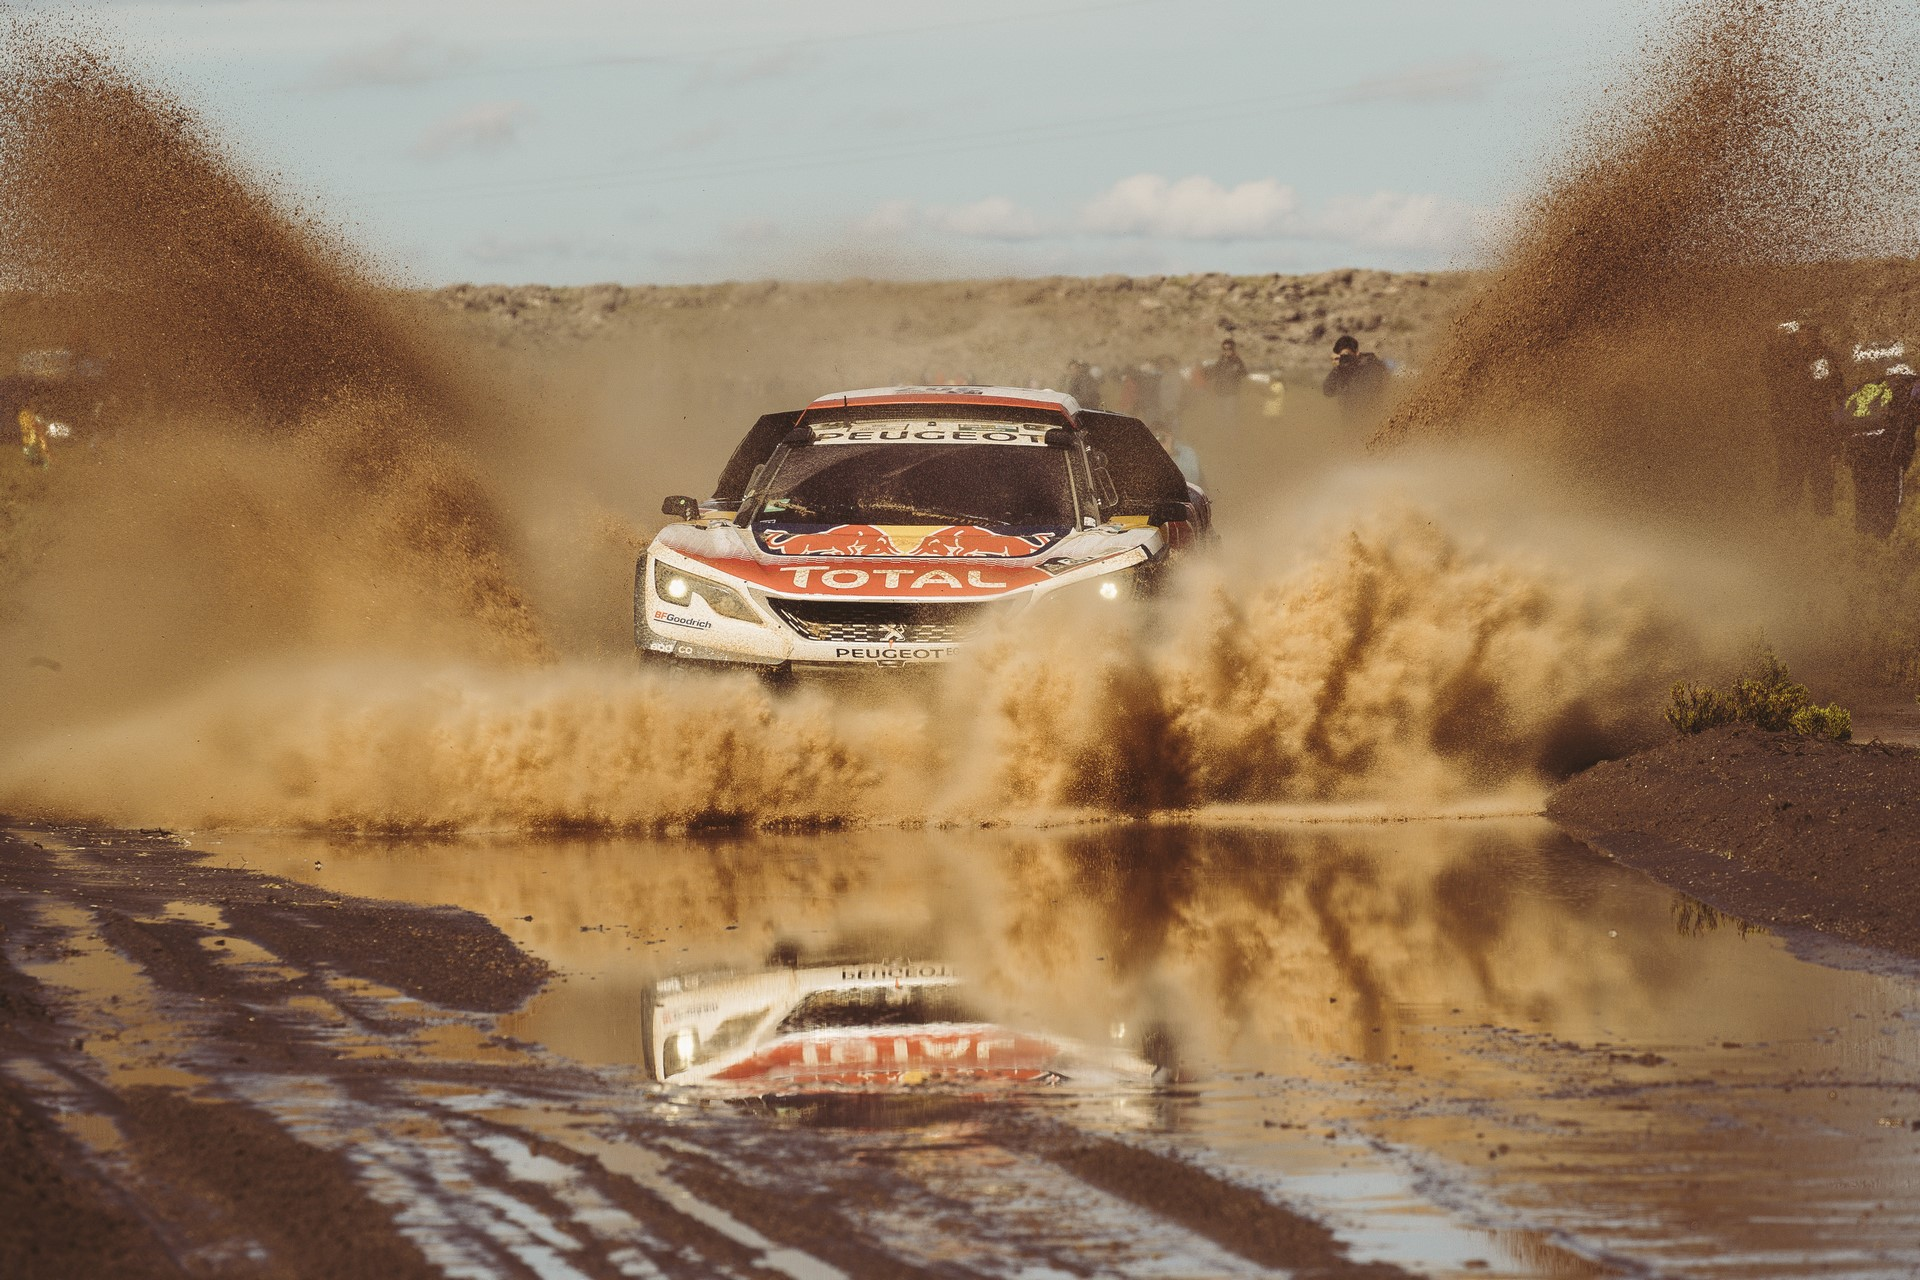 Cyril Despres  (FRA) of Team Peugeot TOTAL races during stage 8 of Rally Dakar 2017 from Uyuni, Bolivia to Salta, Argentina on January 10, 2017.